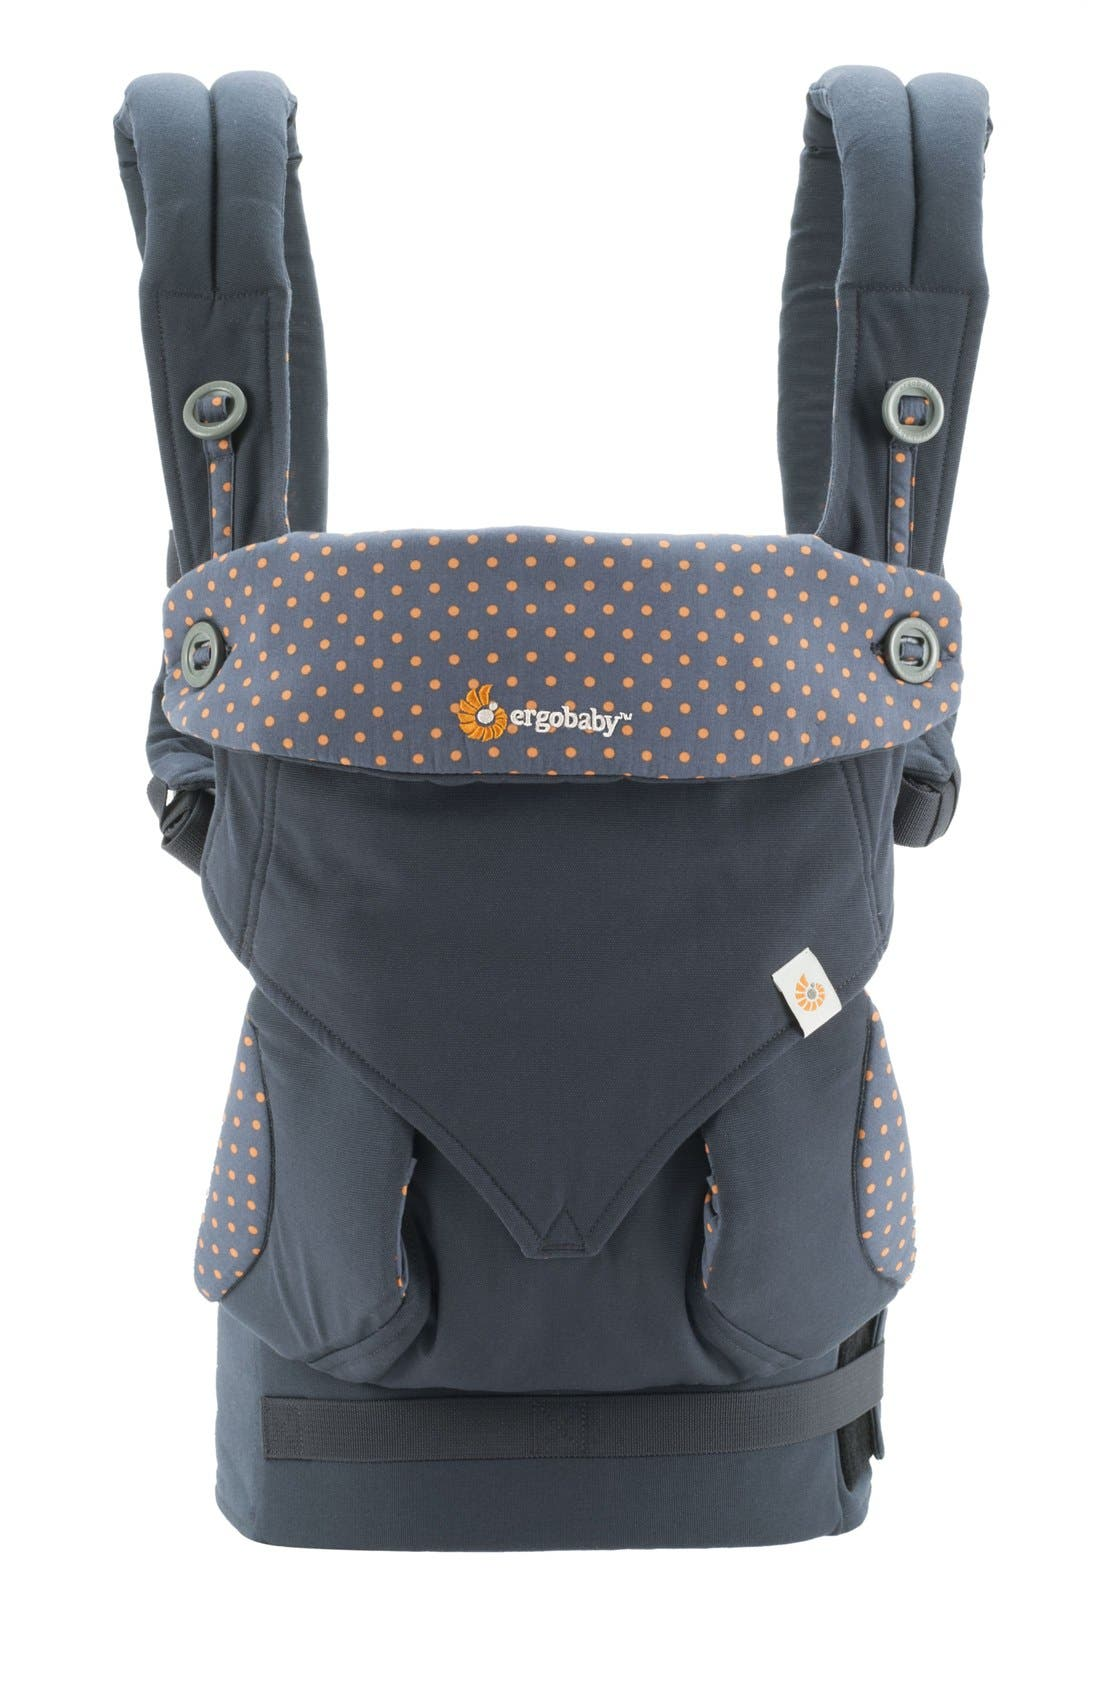 Alternate Image 1 Selected - ERGObaby '360' Baby Carrier